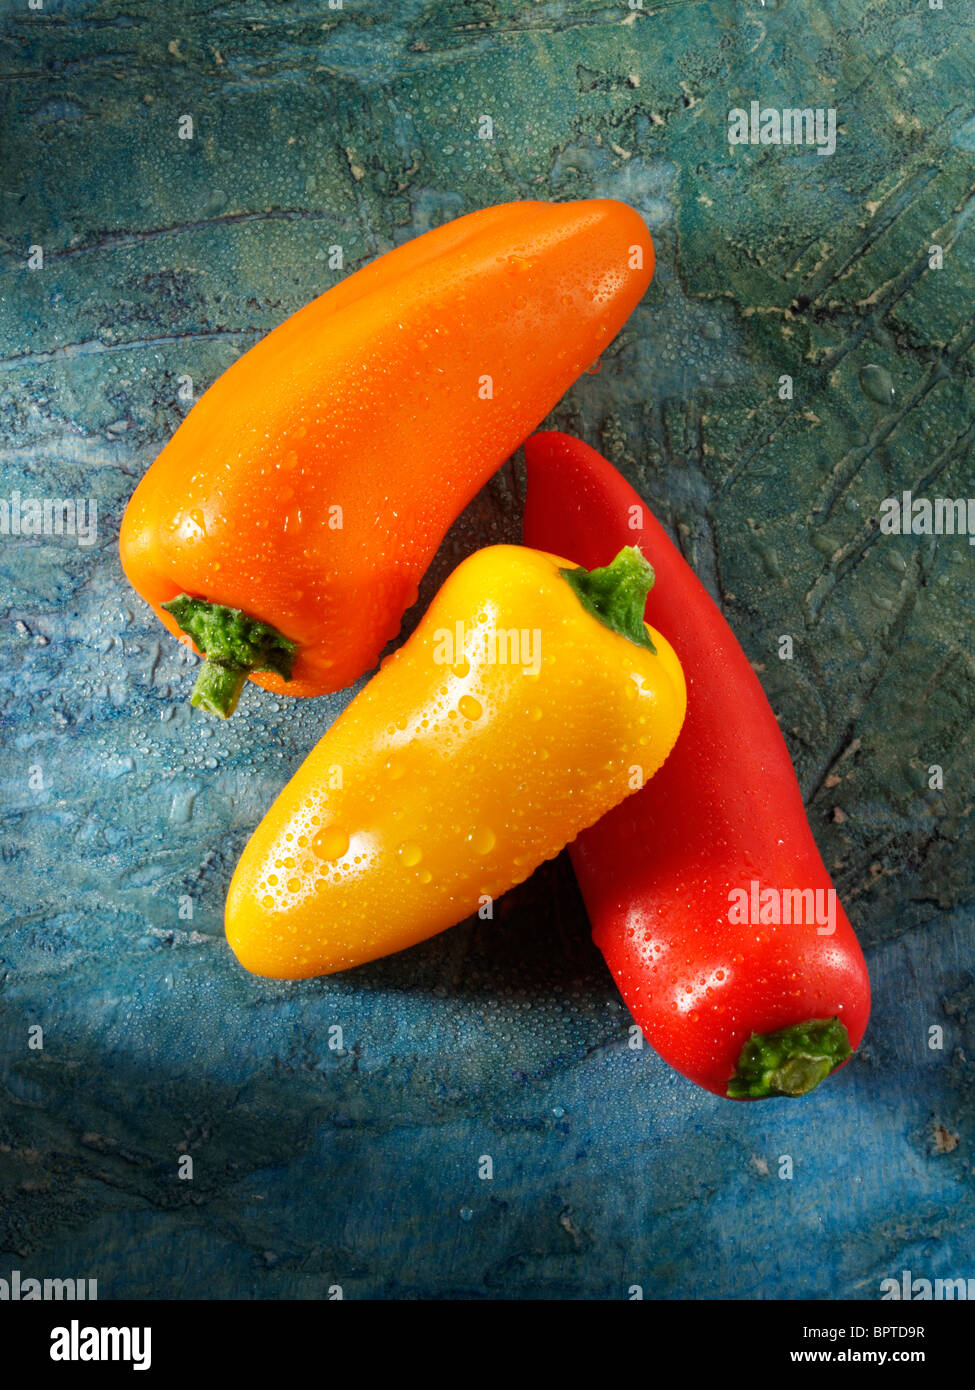 Mixed red, yellow & orange fresh mini peppers photos, pictures & images - Stock Image